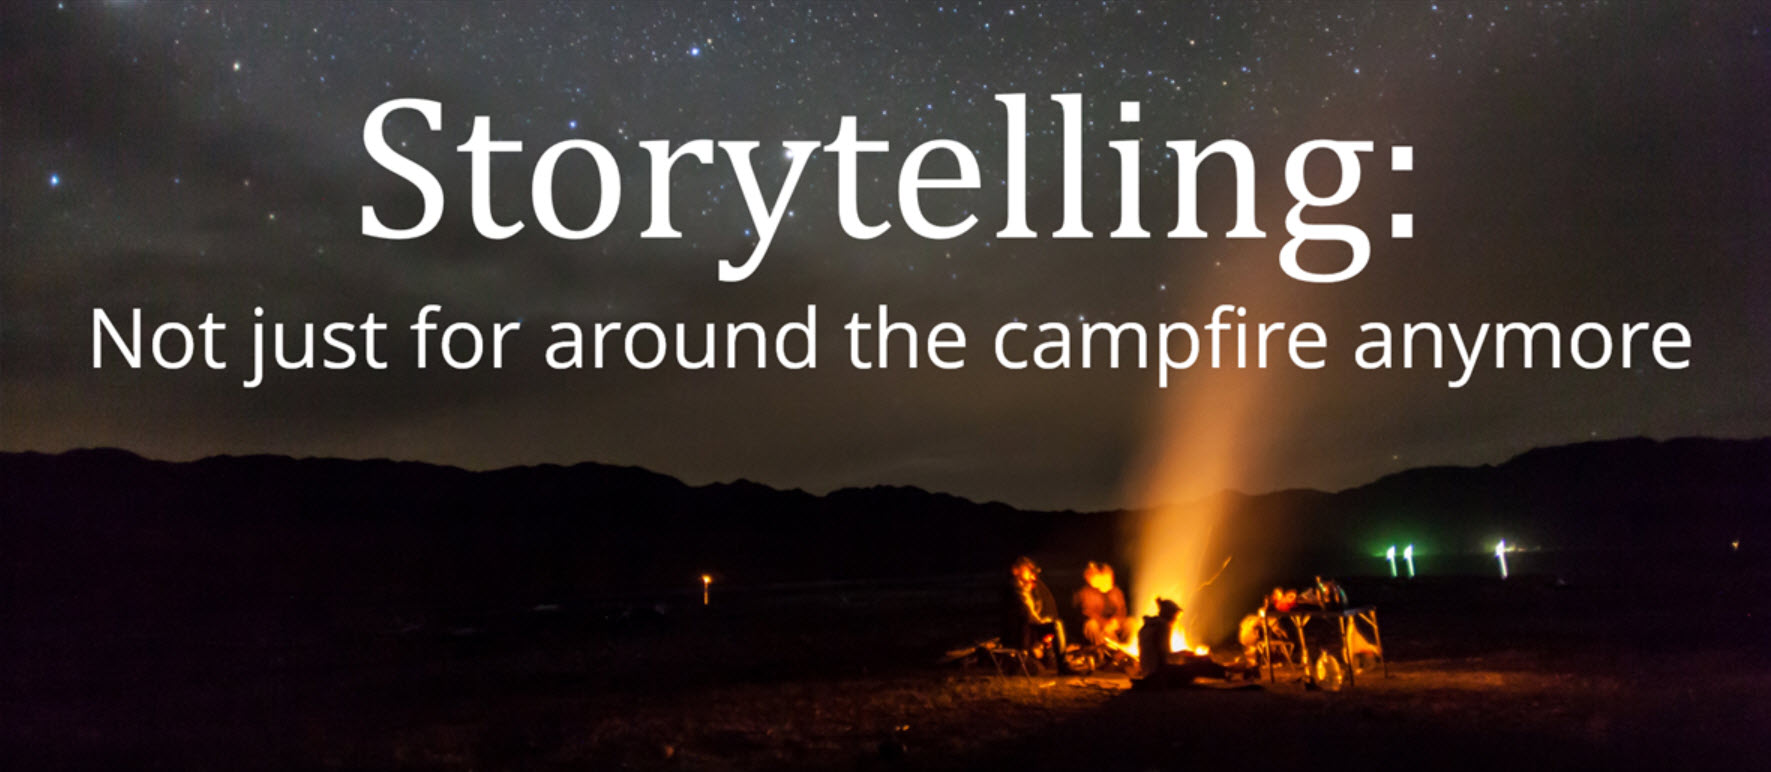 Corporate storytelling for work